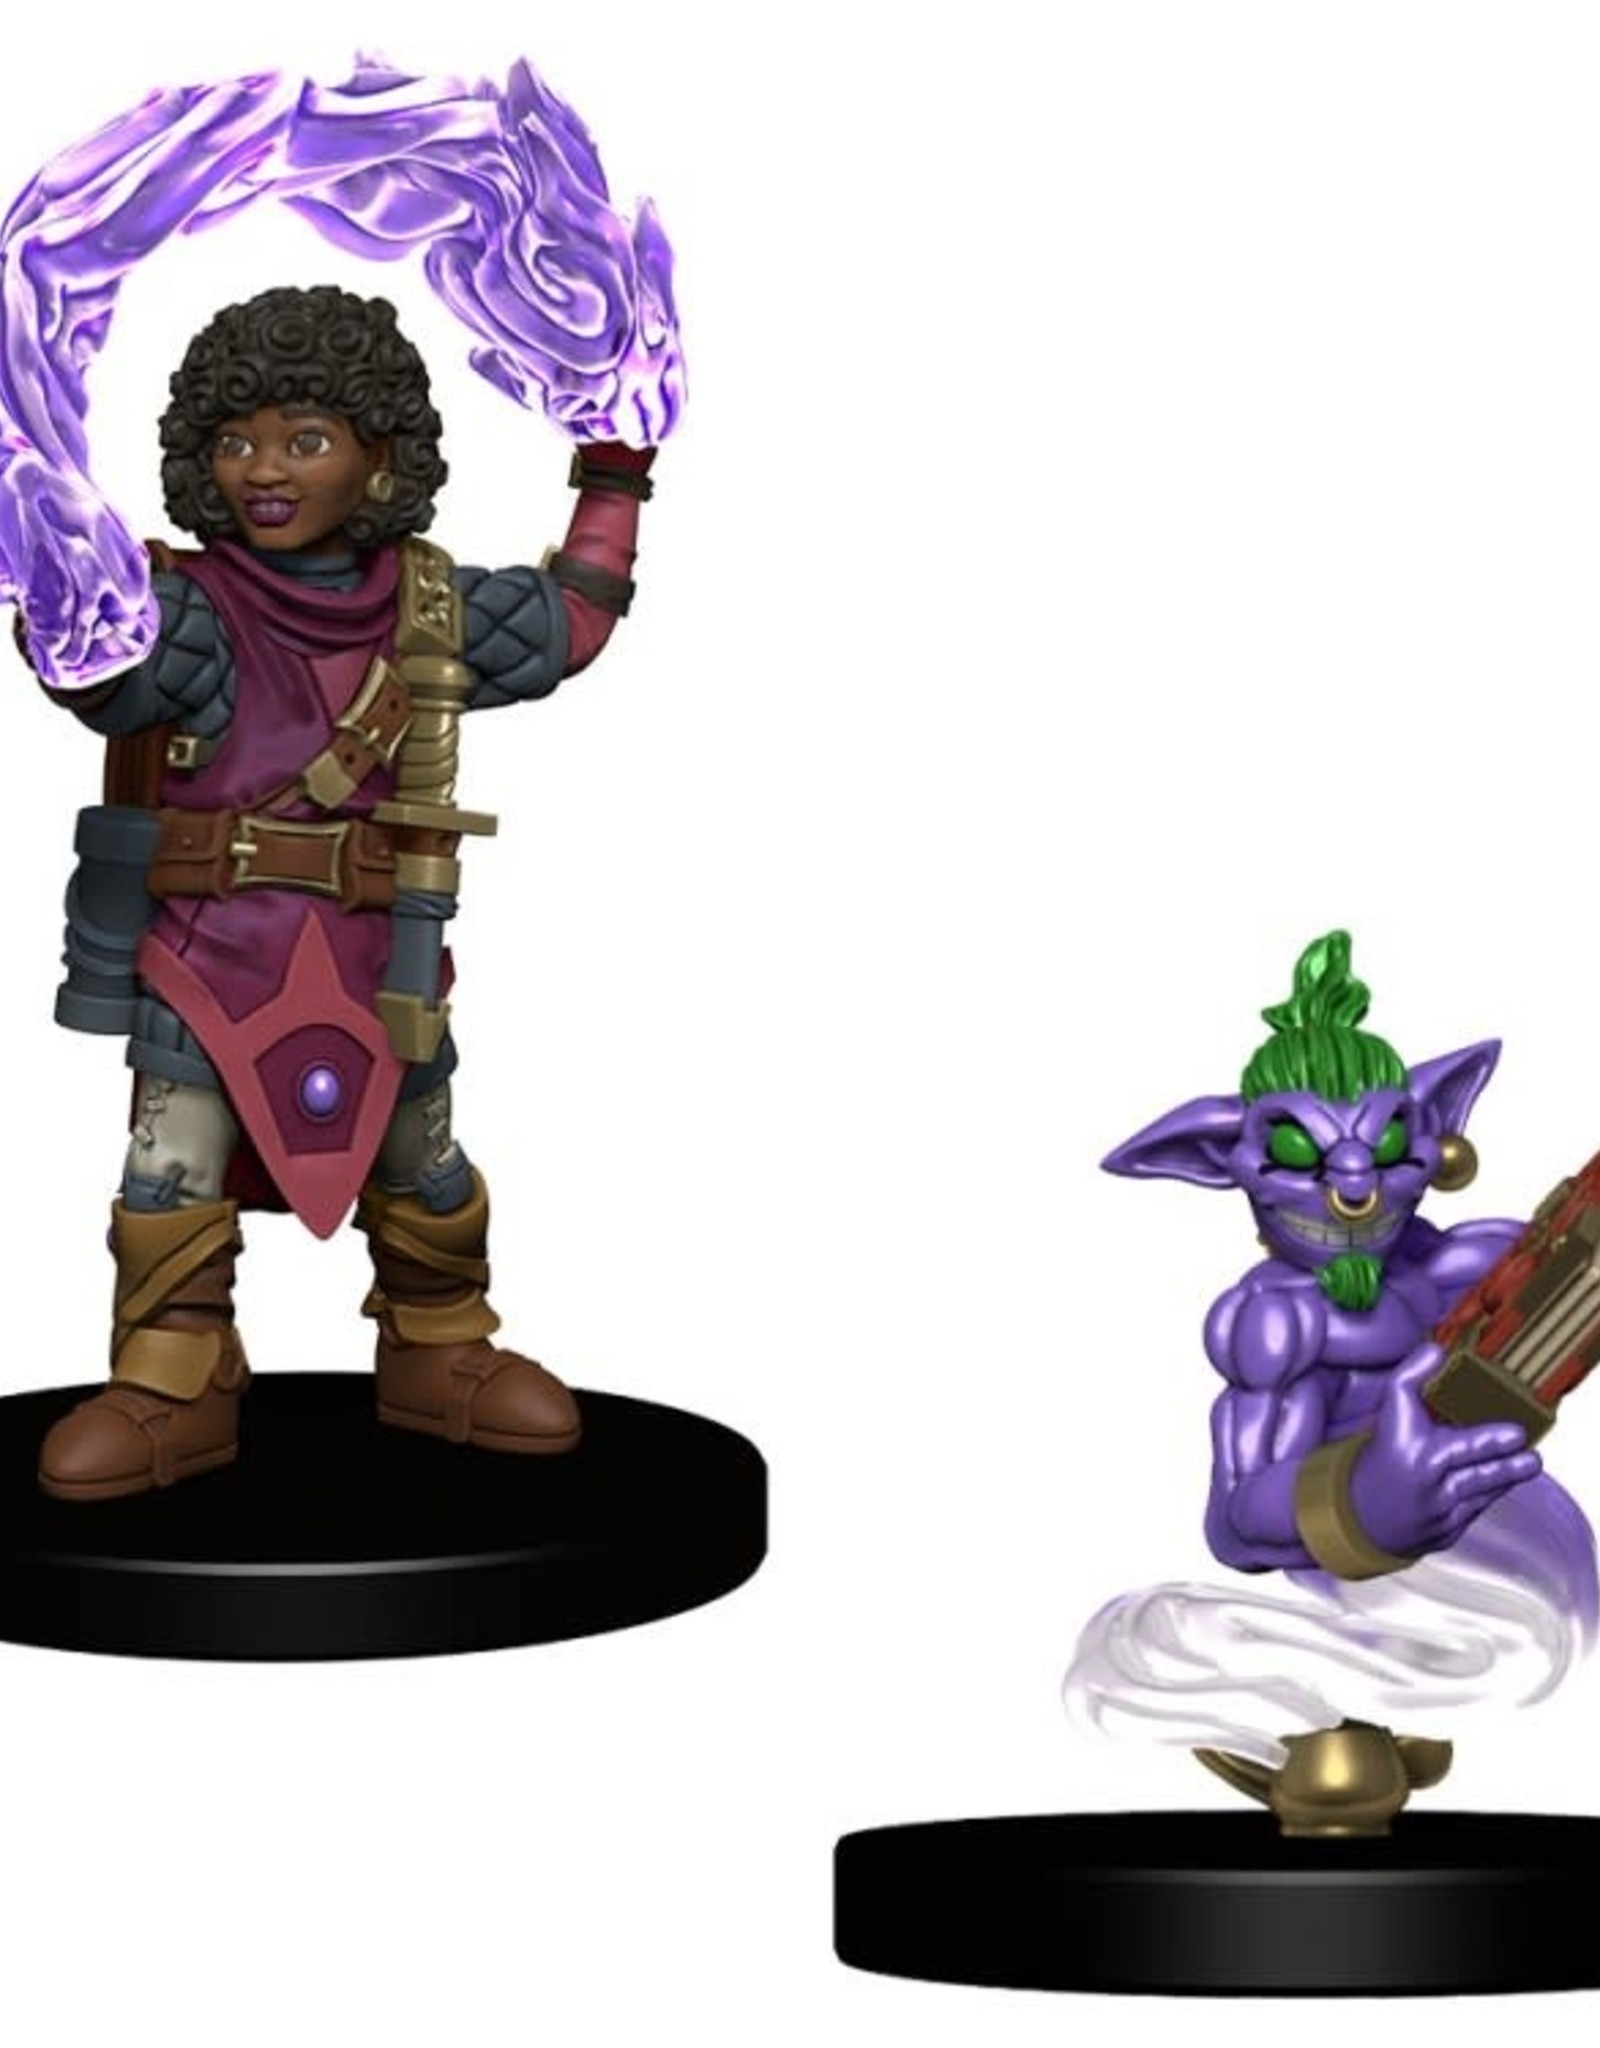 Wizkids Wardlings Painted: Girl Wizard with Genie